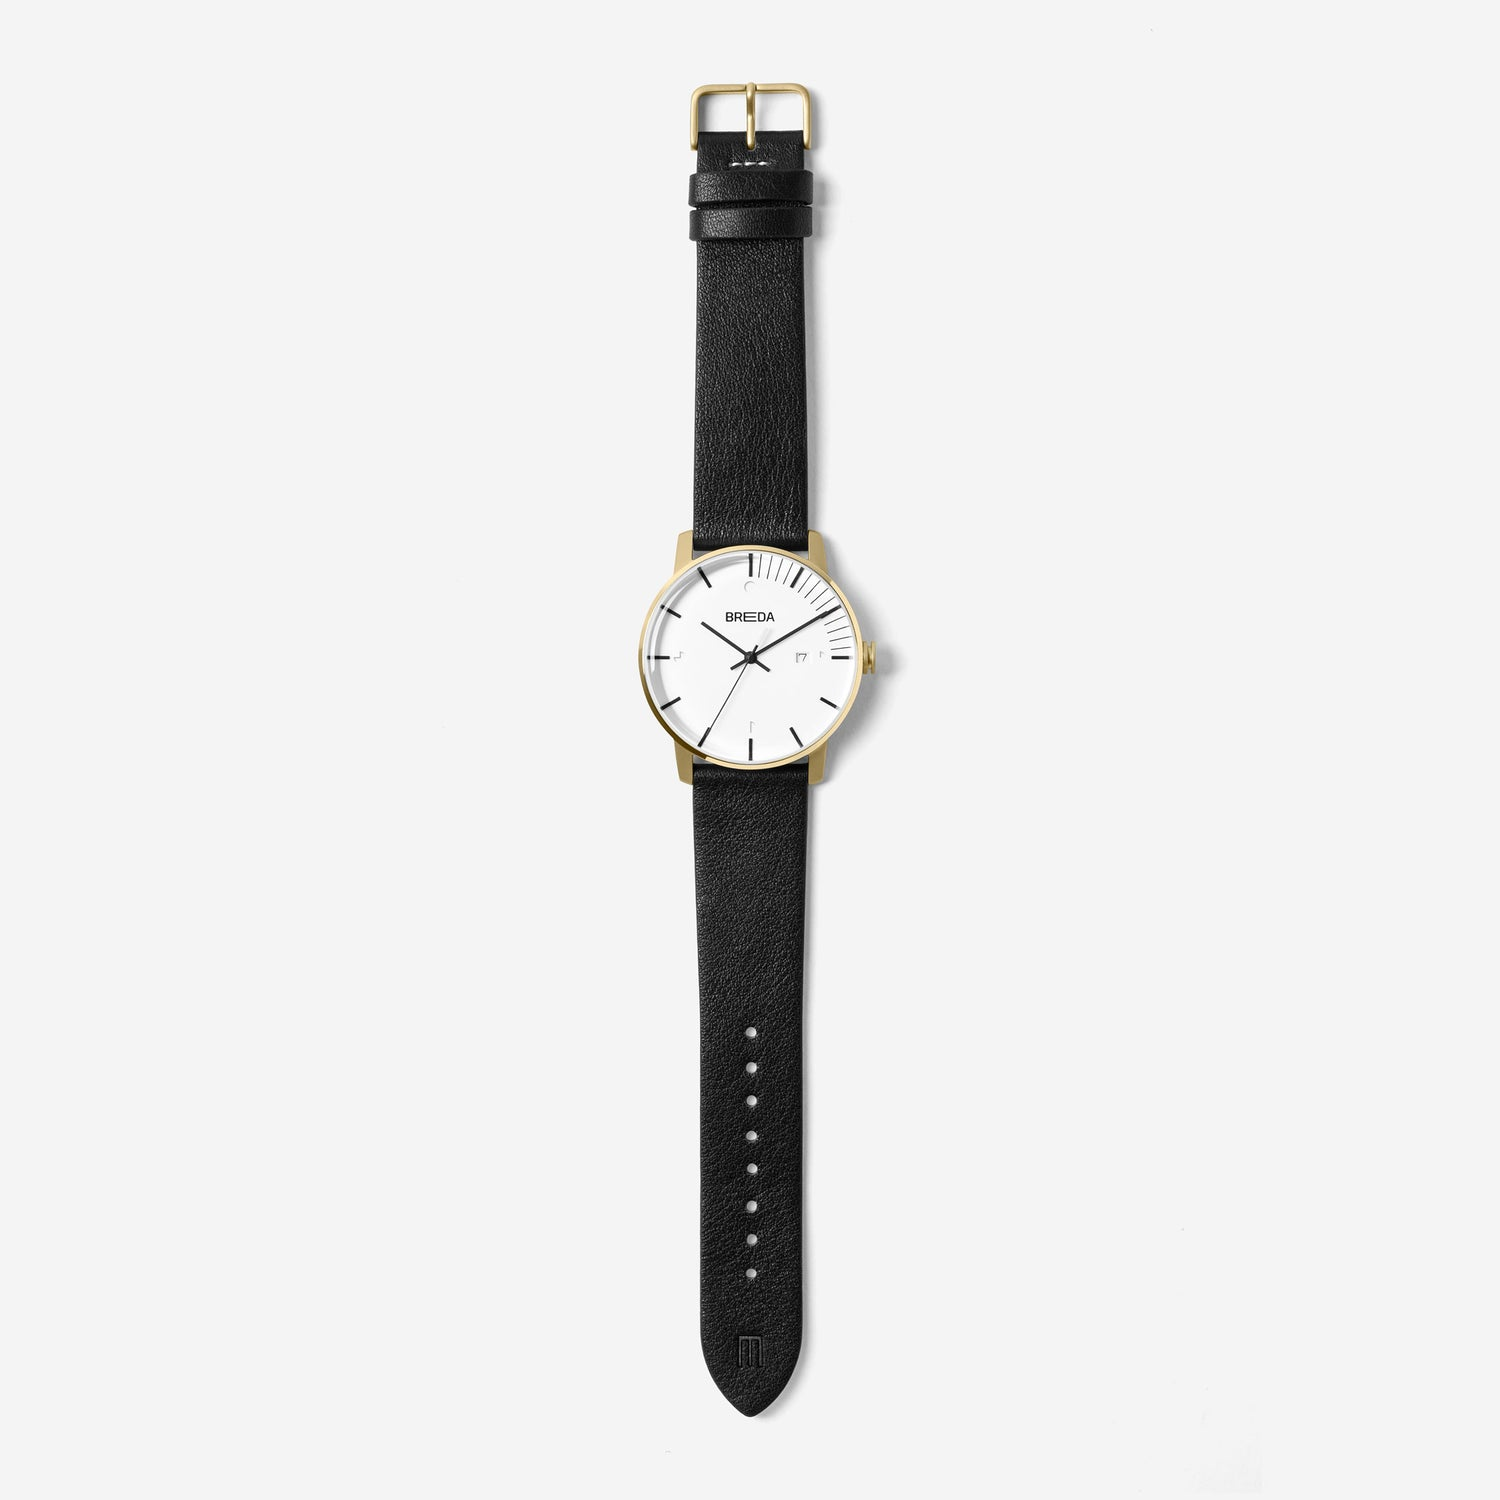 breda-phase-9000d-gold-black-watch-long